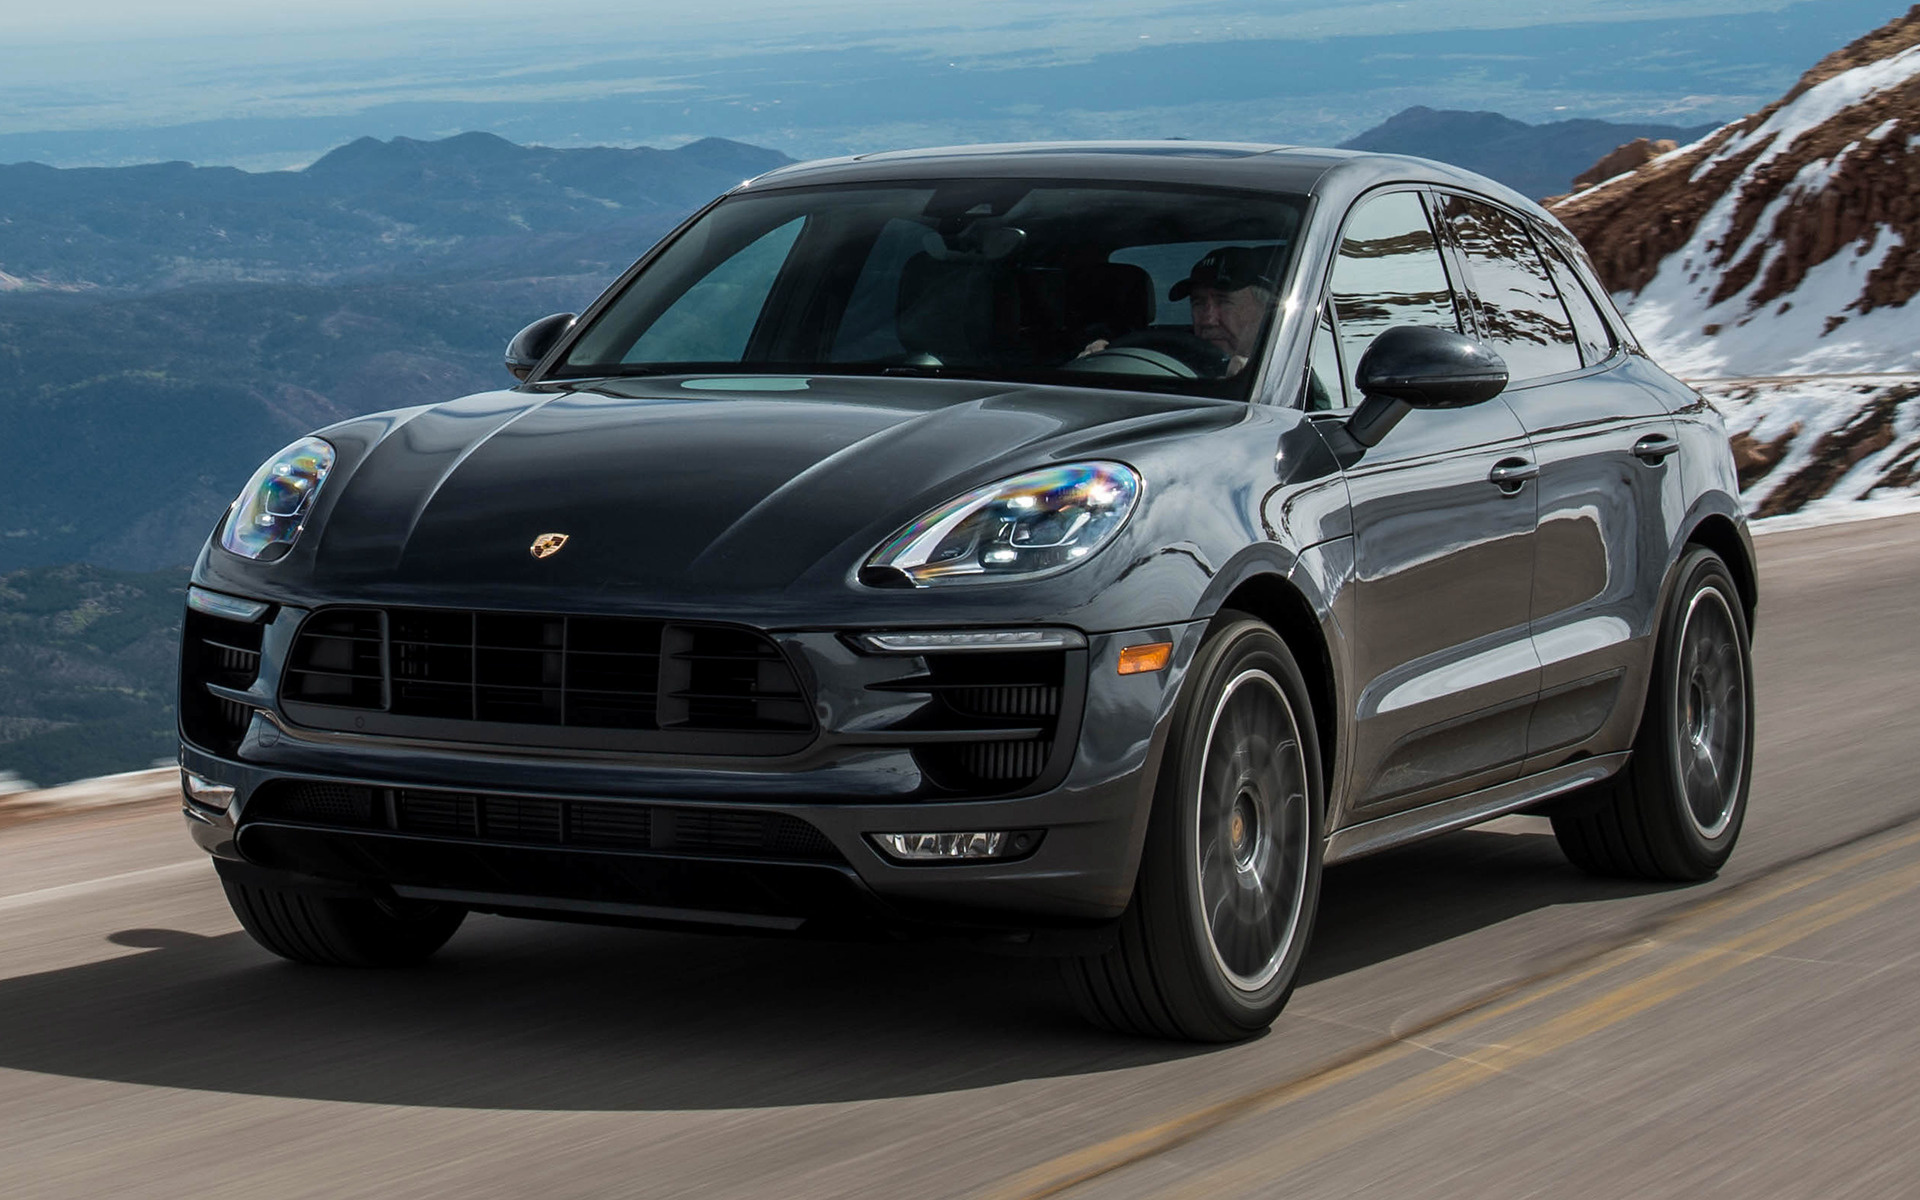 Porsche Macan GTS (2017) US Wallpapers and HD Images - Car ...